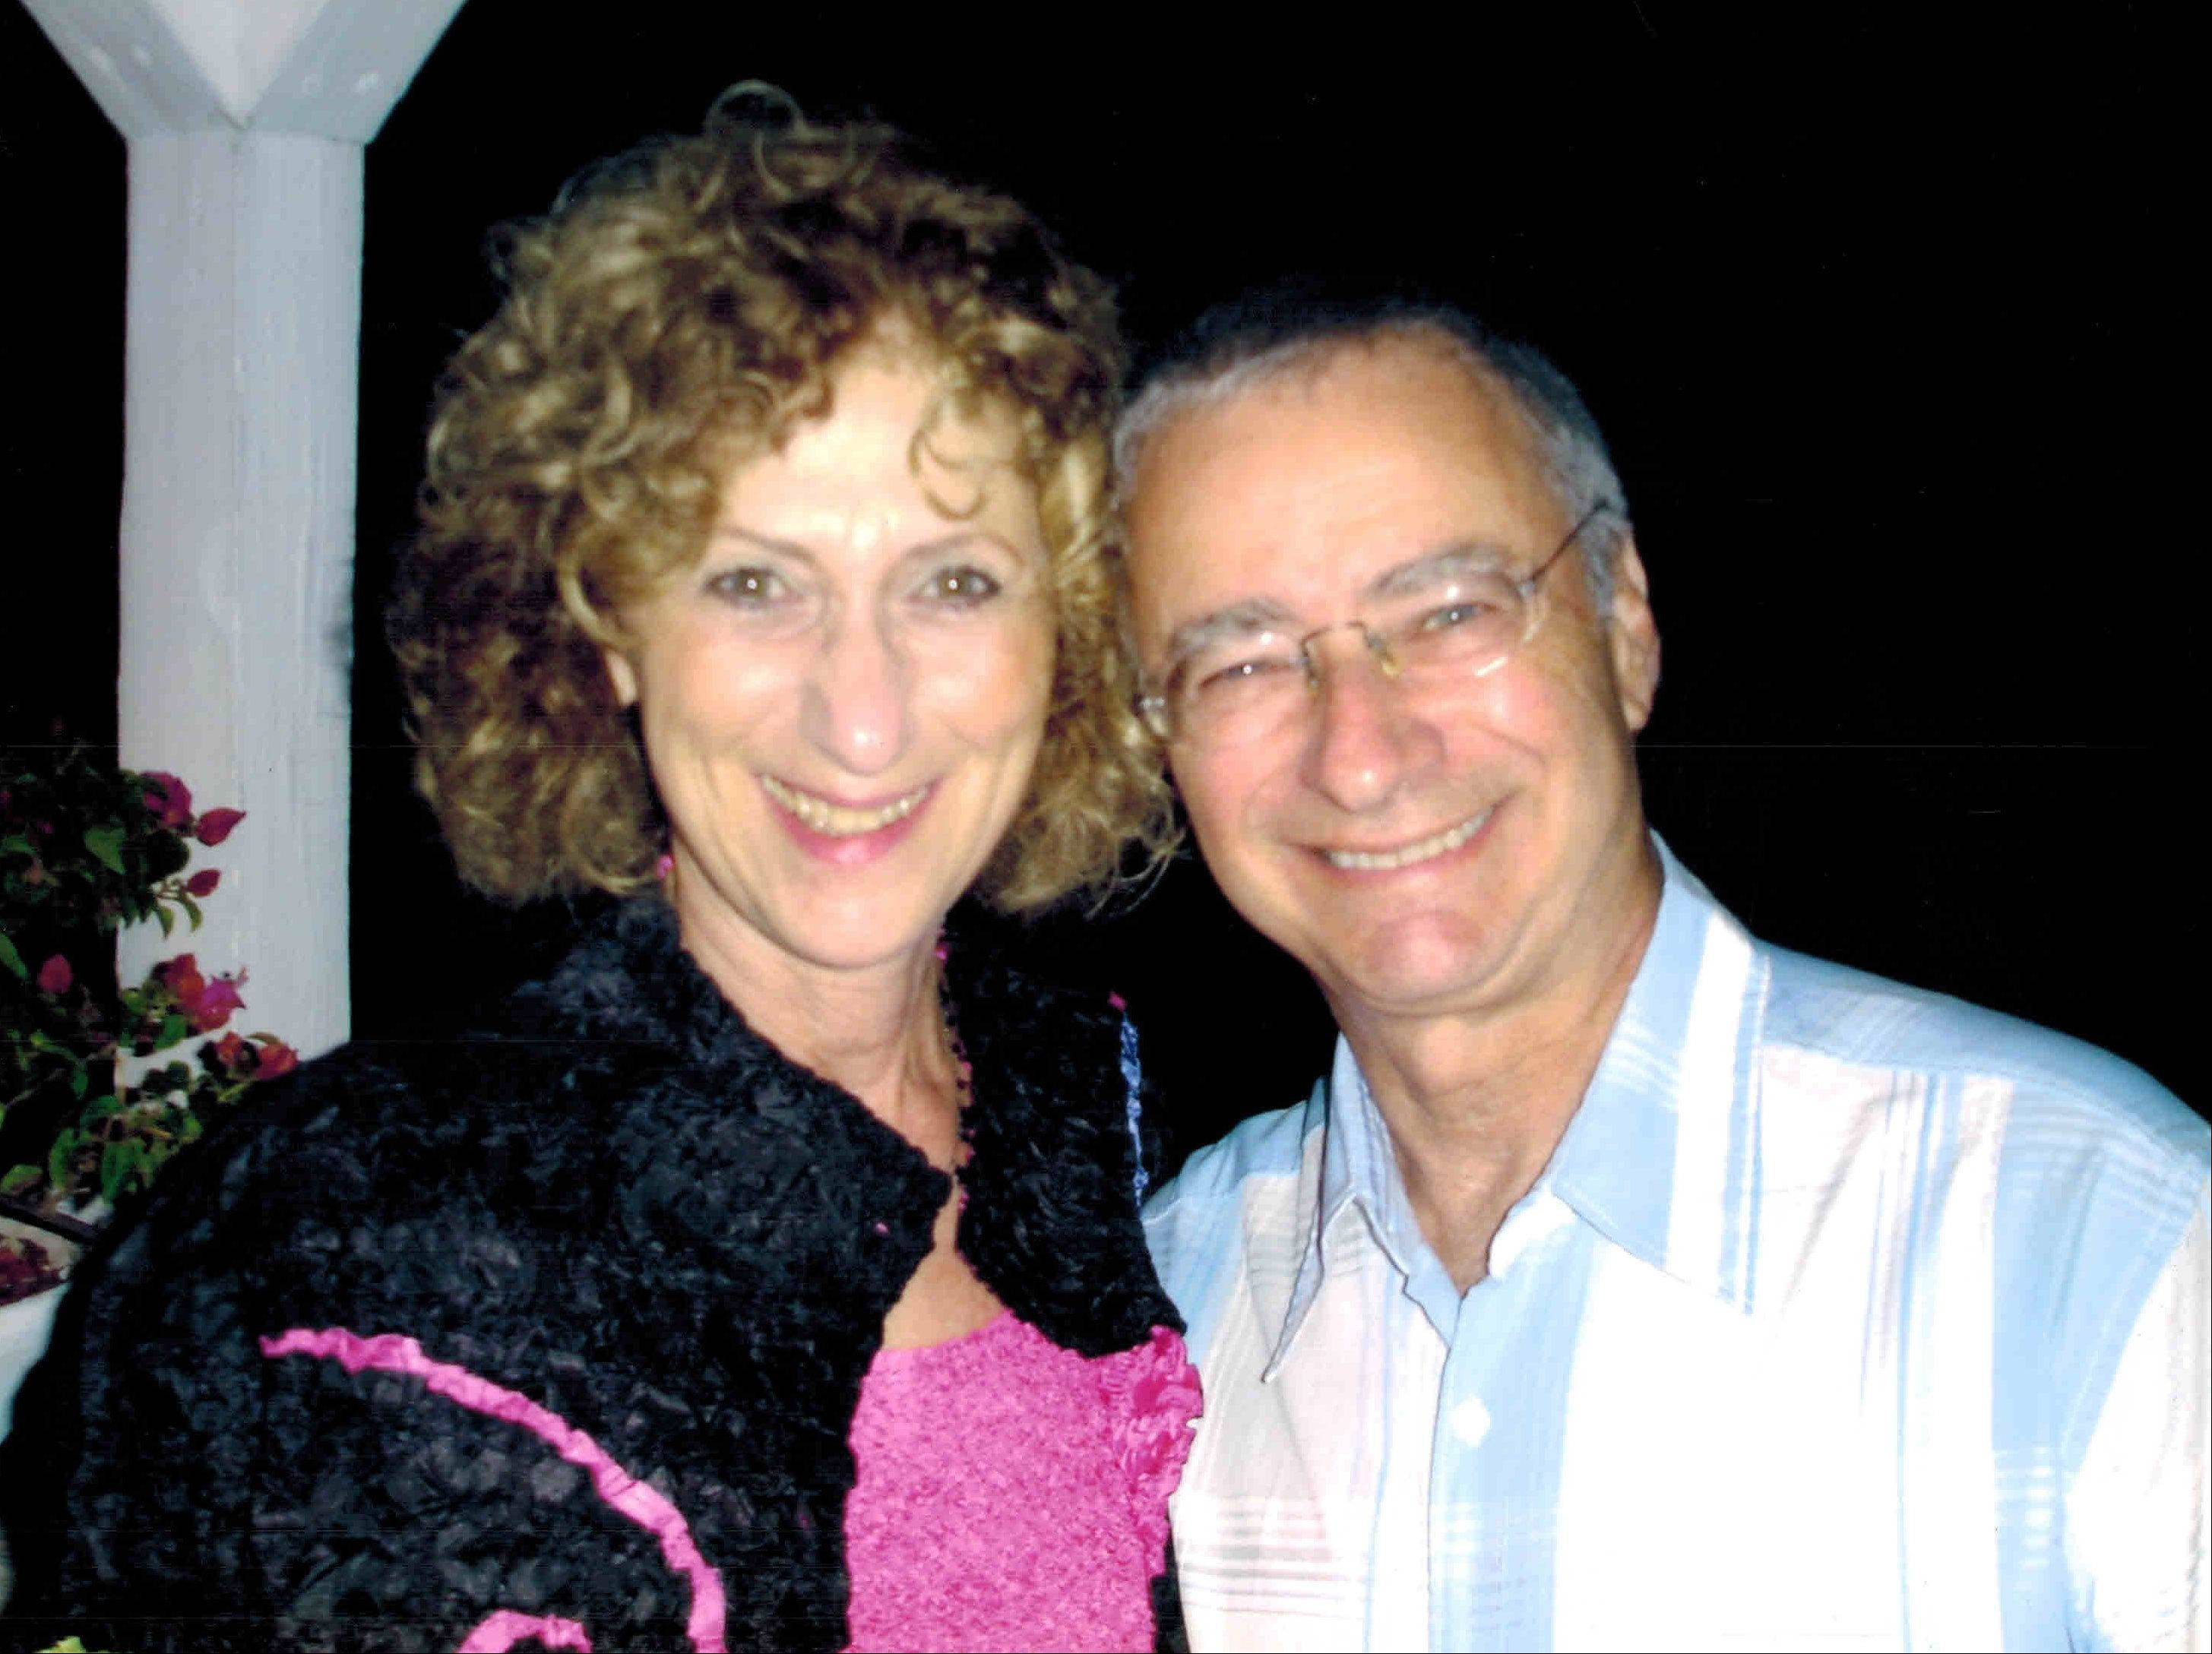 Burton Lindner, 69, and Zorine Lindner, 70, both of Glenview, were killed about a block from their home in a train derailment July 4.